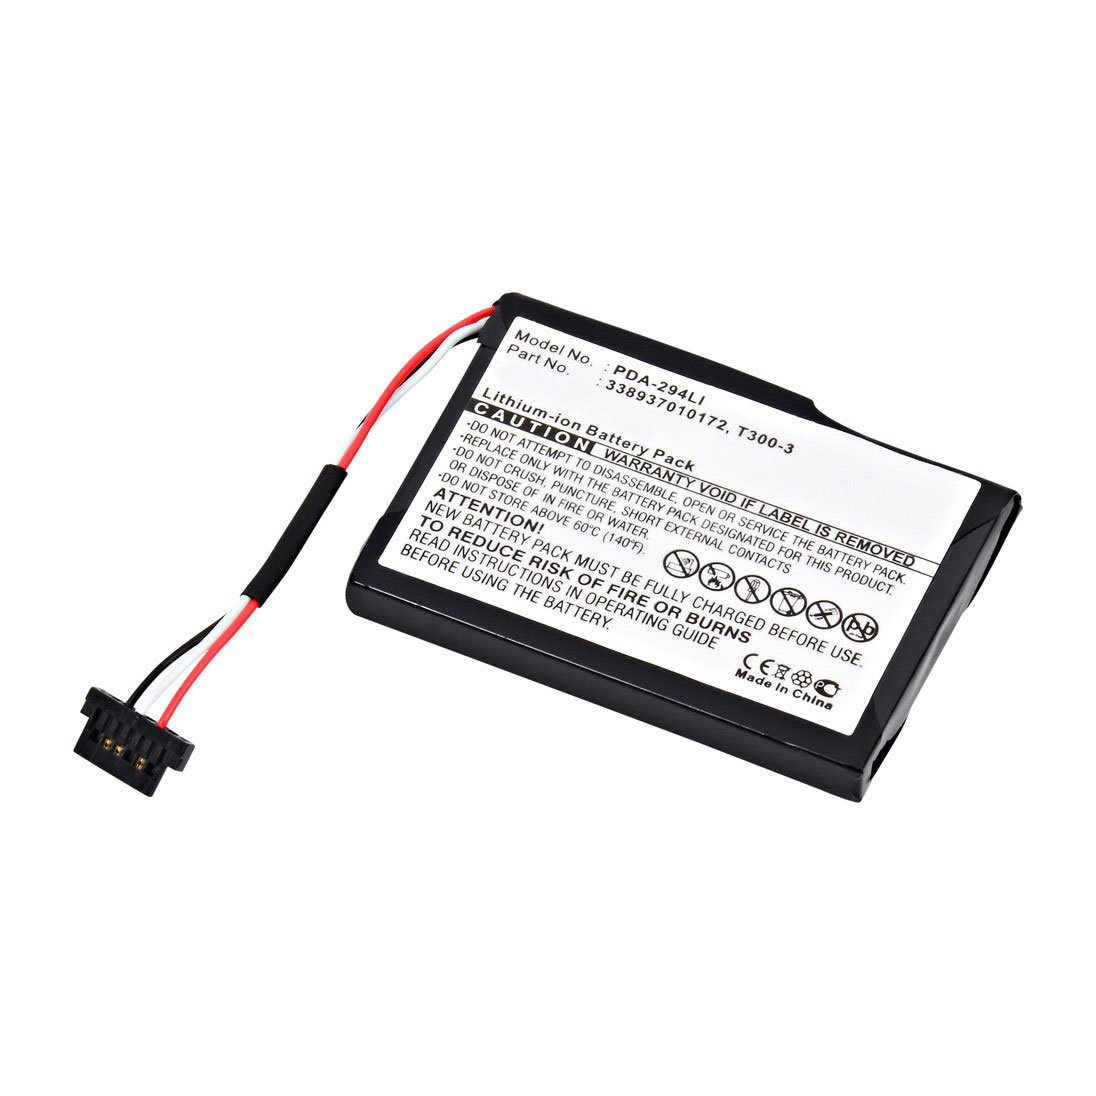 Rechargeable battery for Mitac T300-3 750mAh Li-Ion